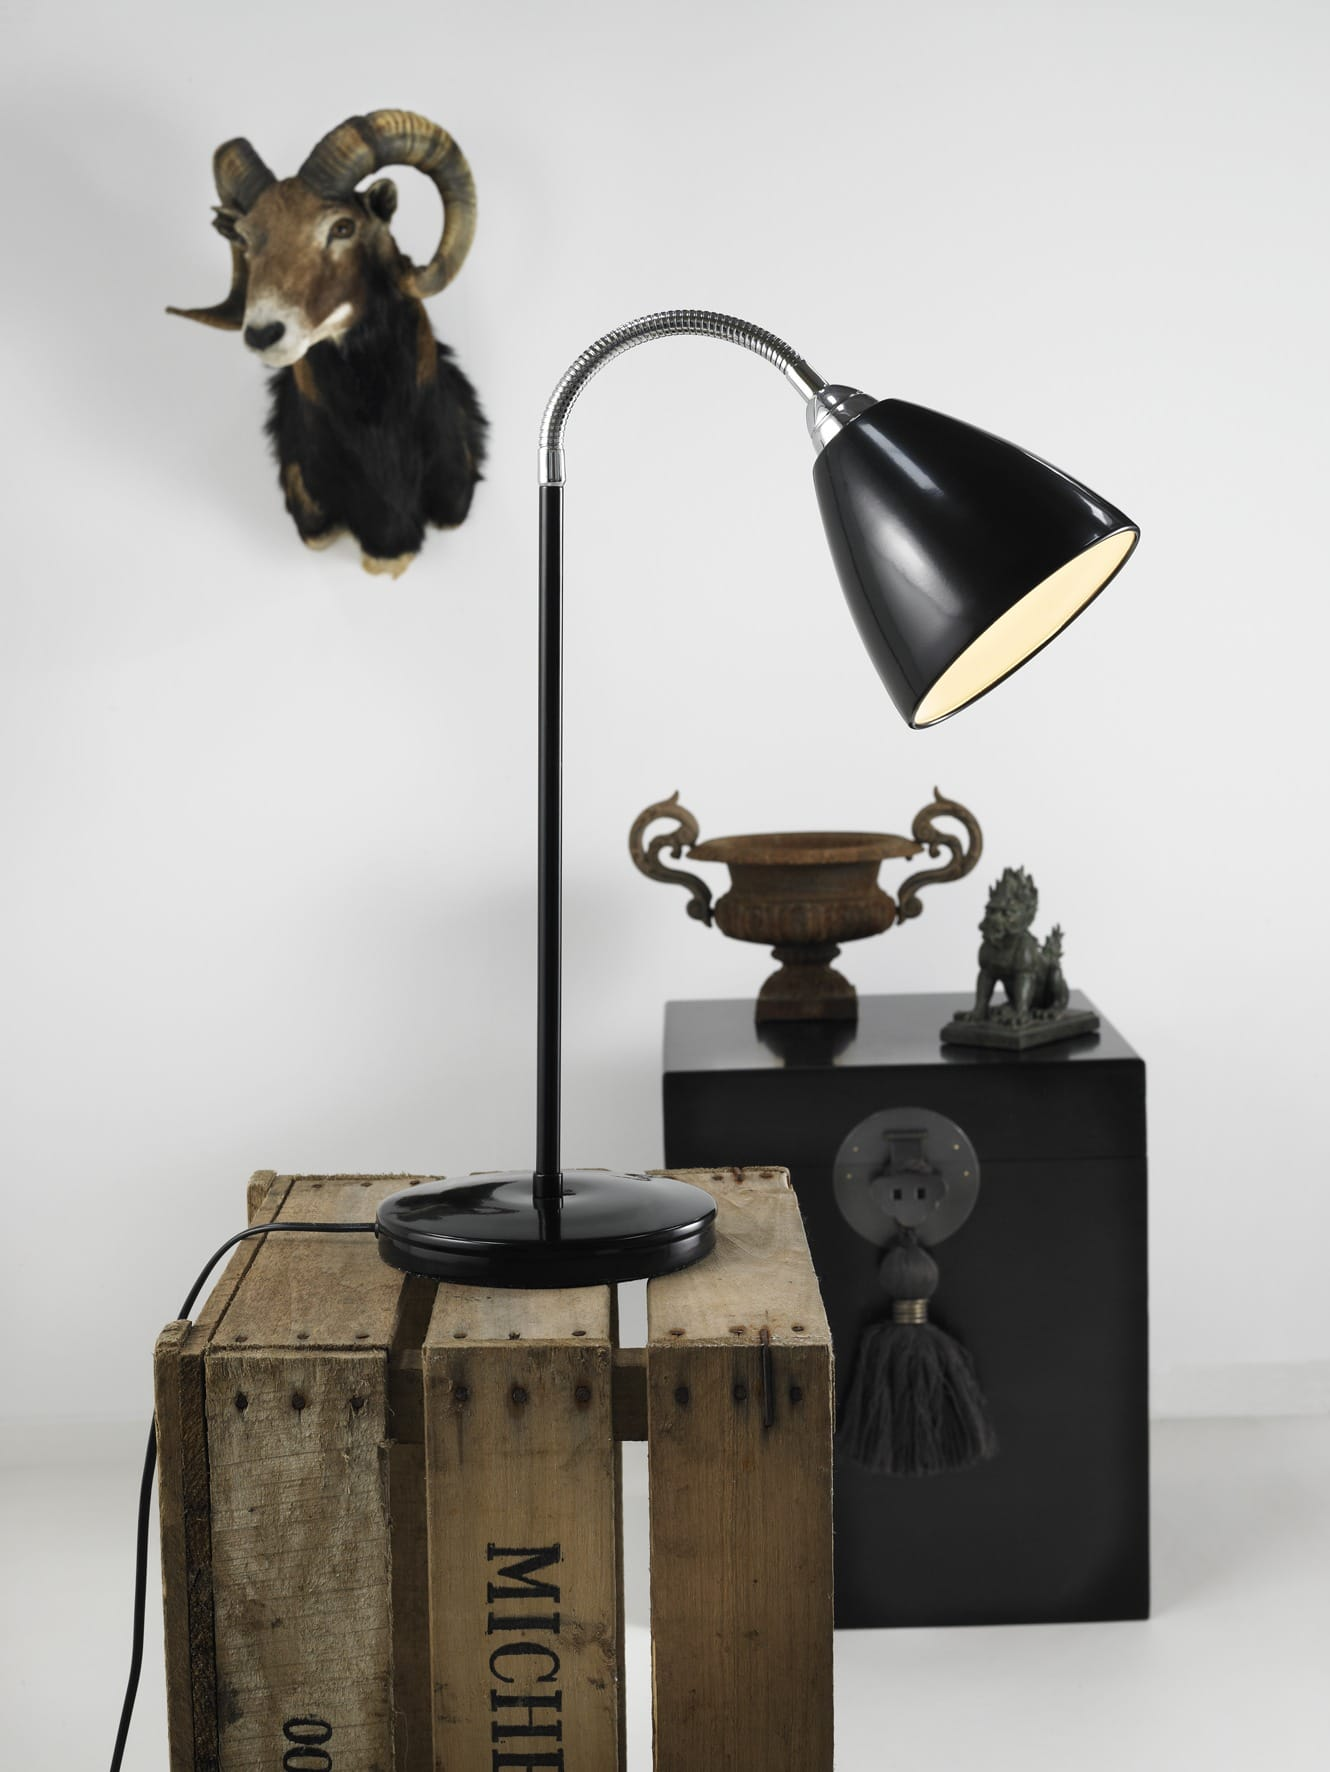 Black Task lamp sits on wooden crate eclectic mix of retro objects.